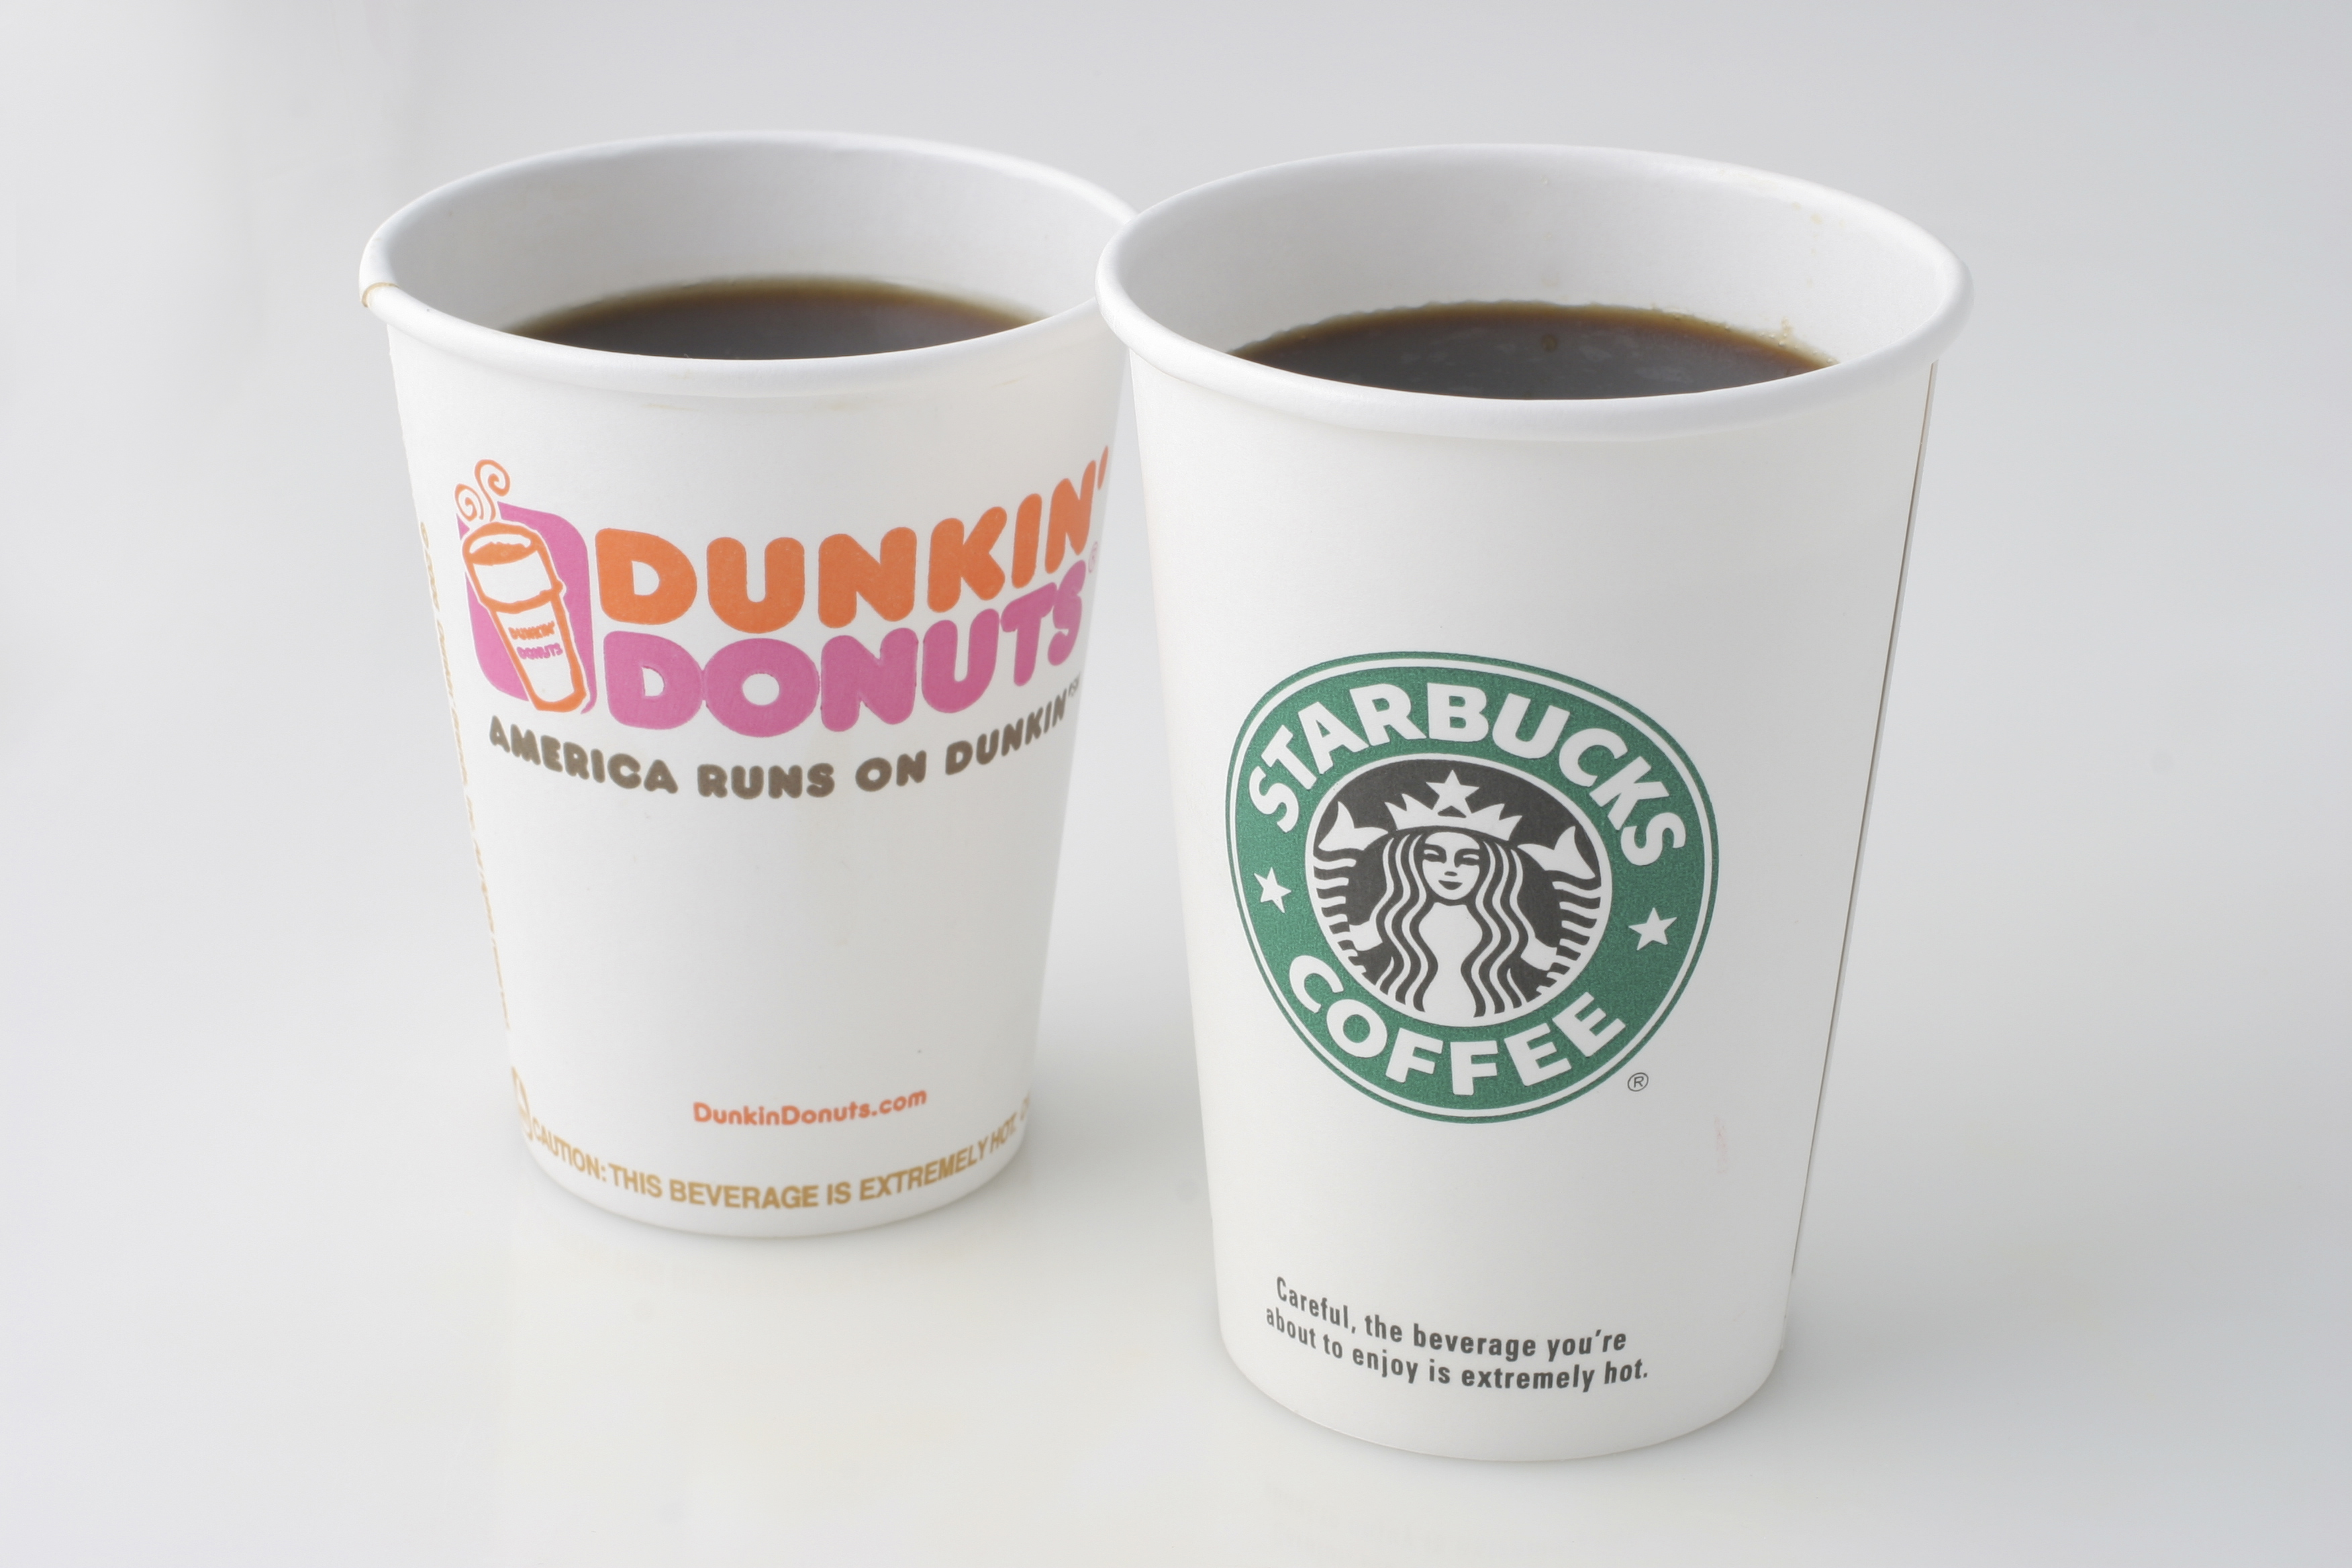 Dunkin' Donuts and Starbucks coffee cups